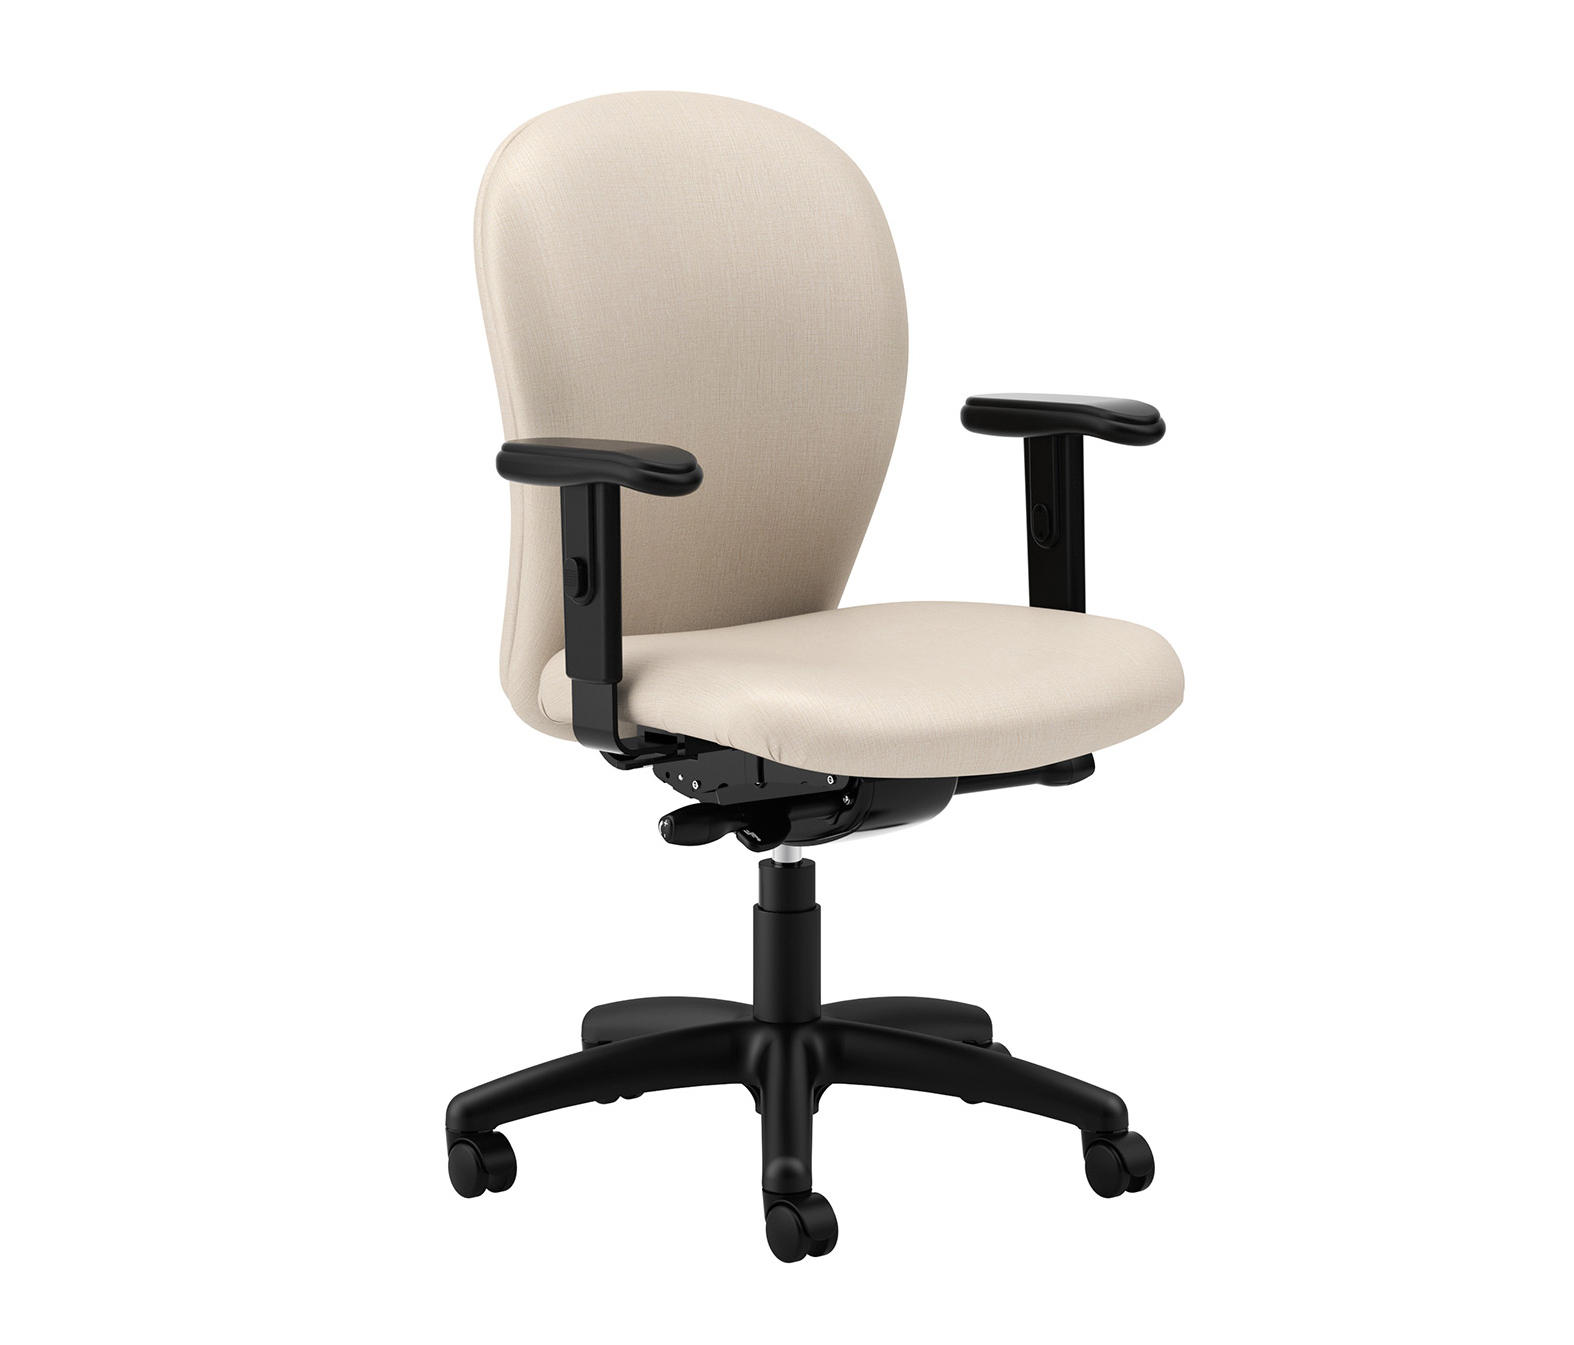 Gotcha Seating Burodrehstuhle Von National Office Furniture